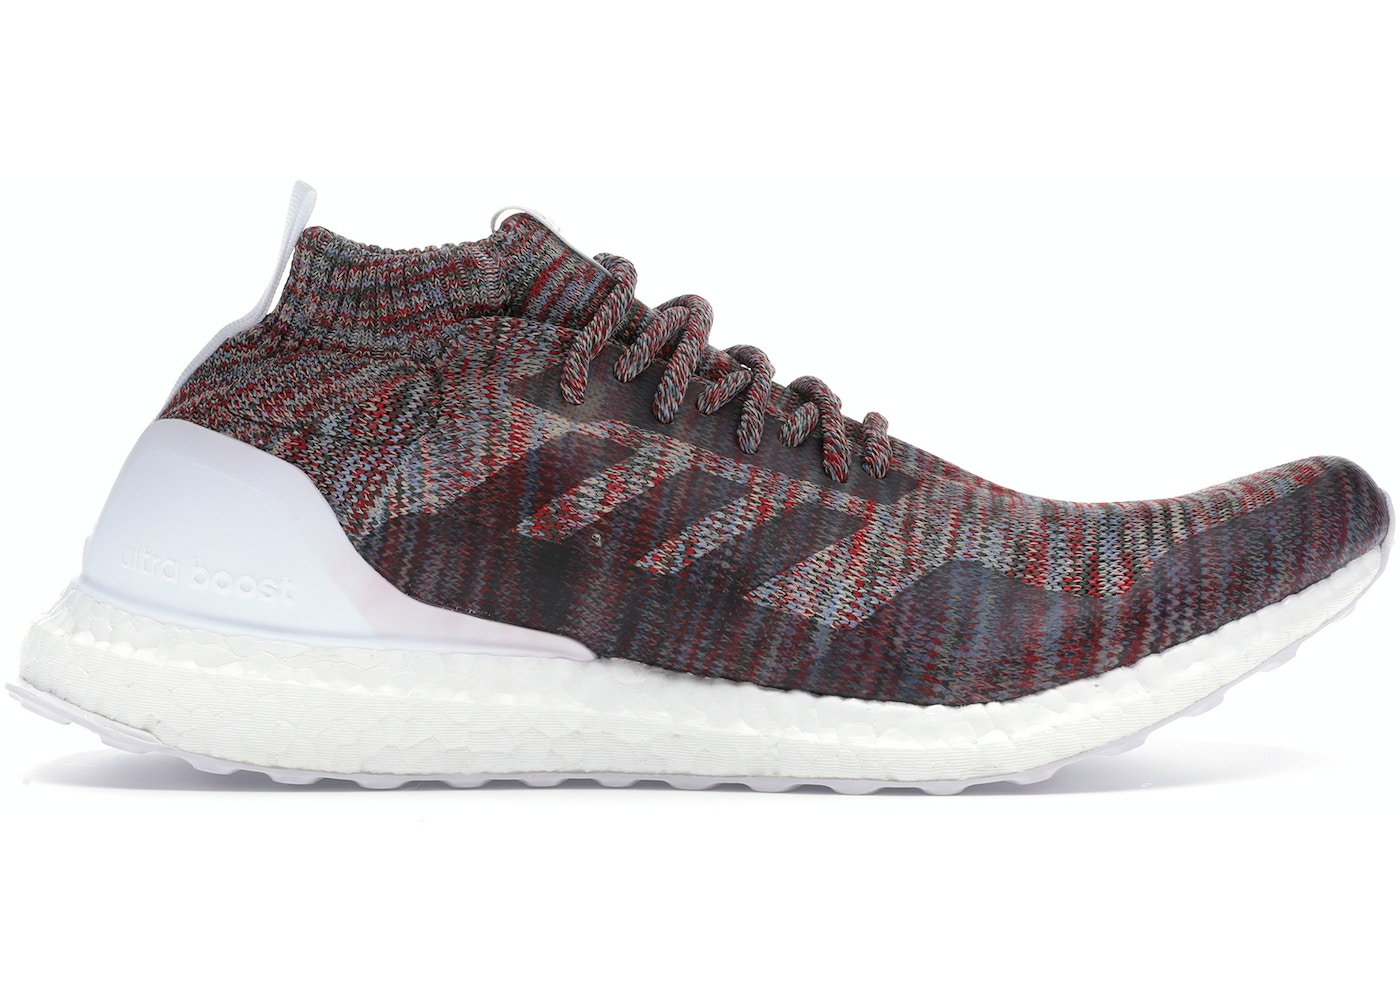 d3caaa1997a02 adidas Ultra Boost Mid Ronnie Fieg - BY2592